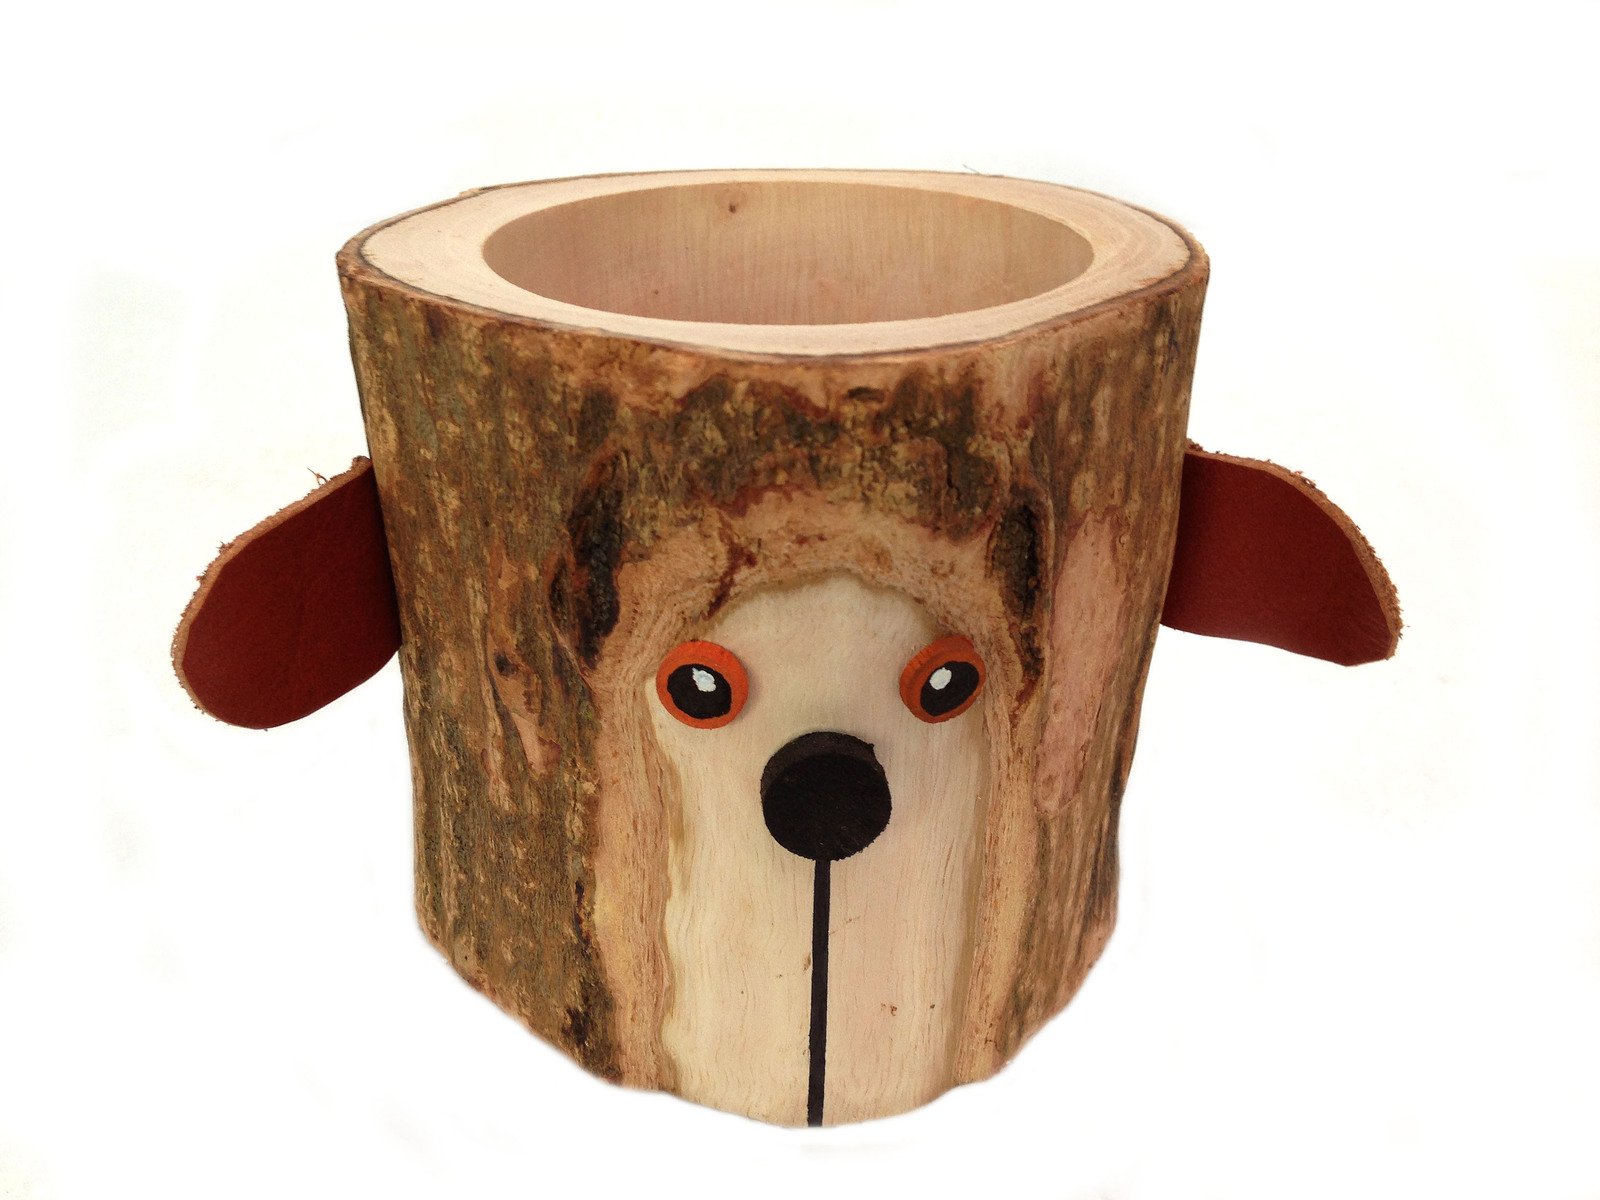 Rustic Pencil Holder Bear Pen Holder Desktop Organizer Tree Bark Wood Pencil Cup